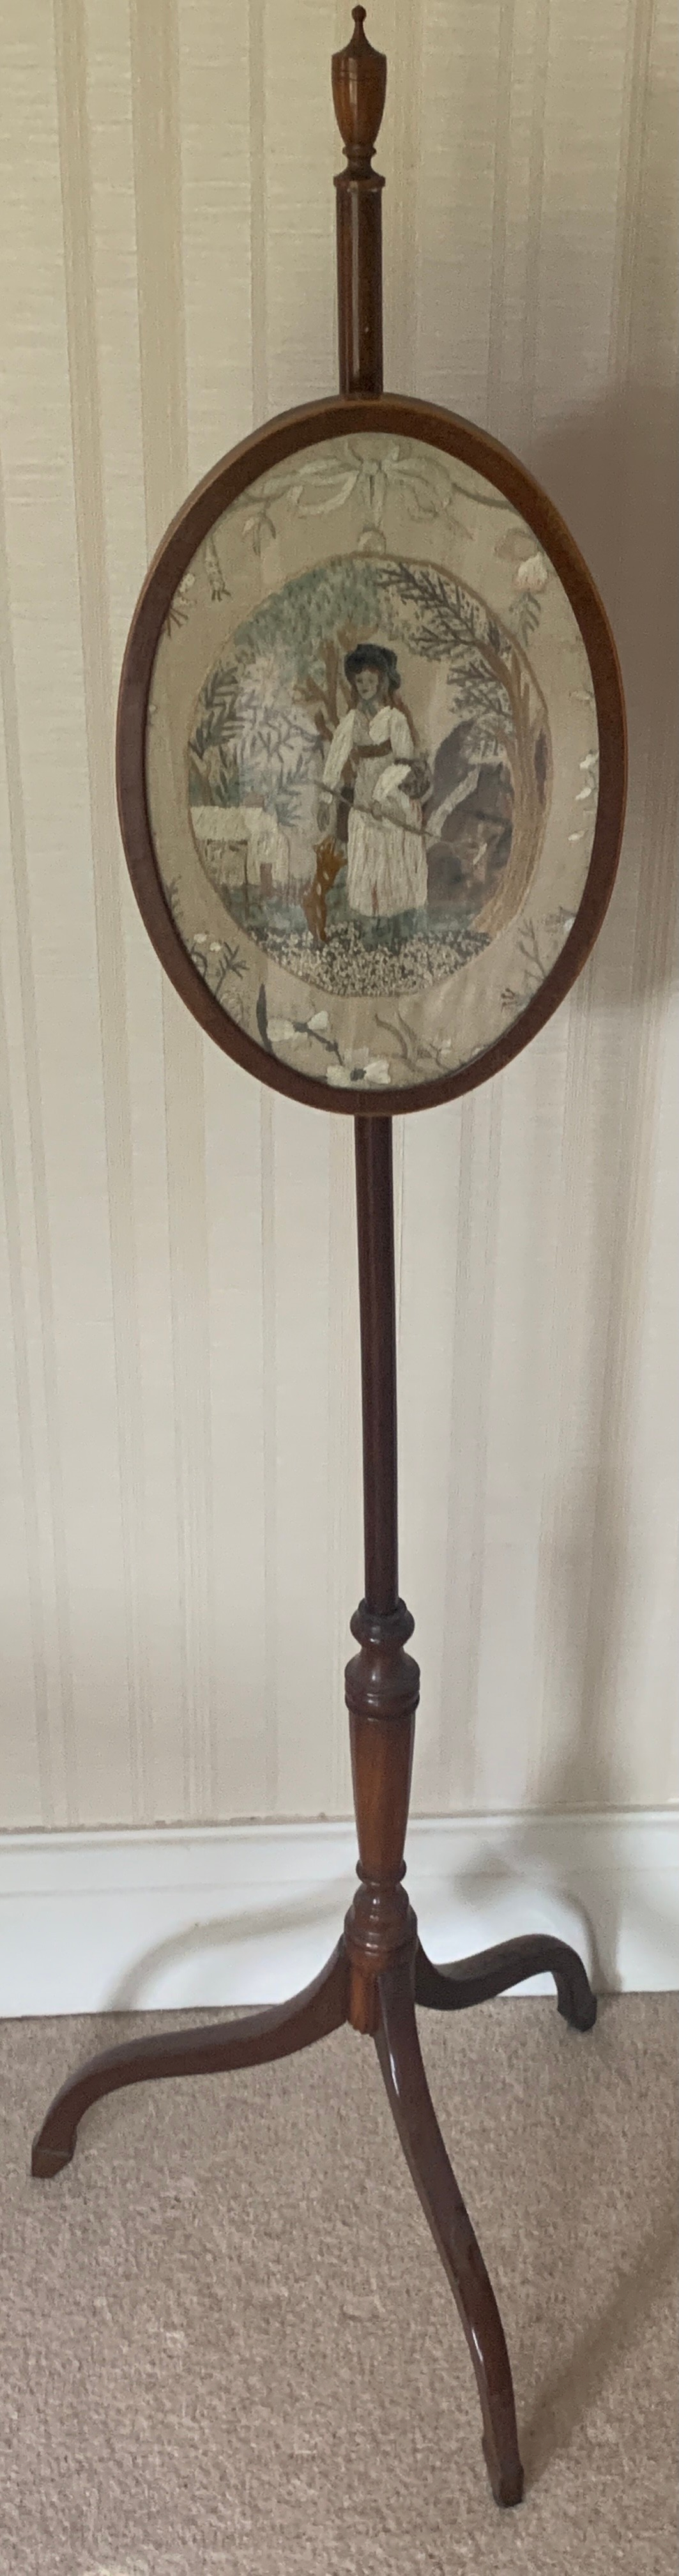 A Victorian mahogany pole screen on tripod base with embroidery to top. 131cms h.Condition